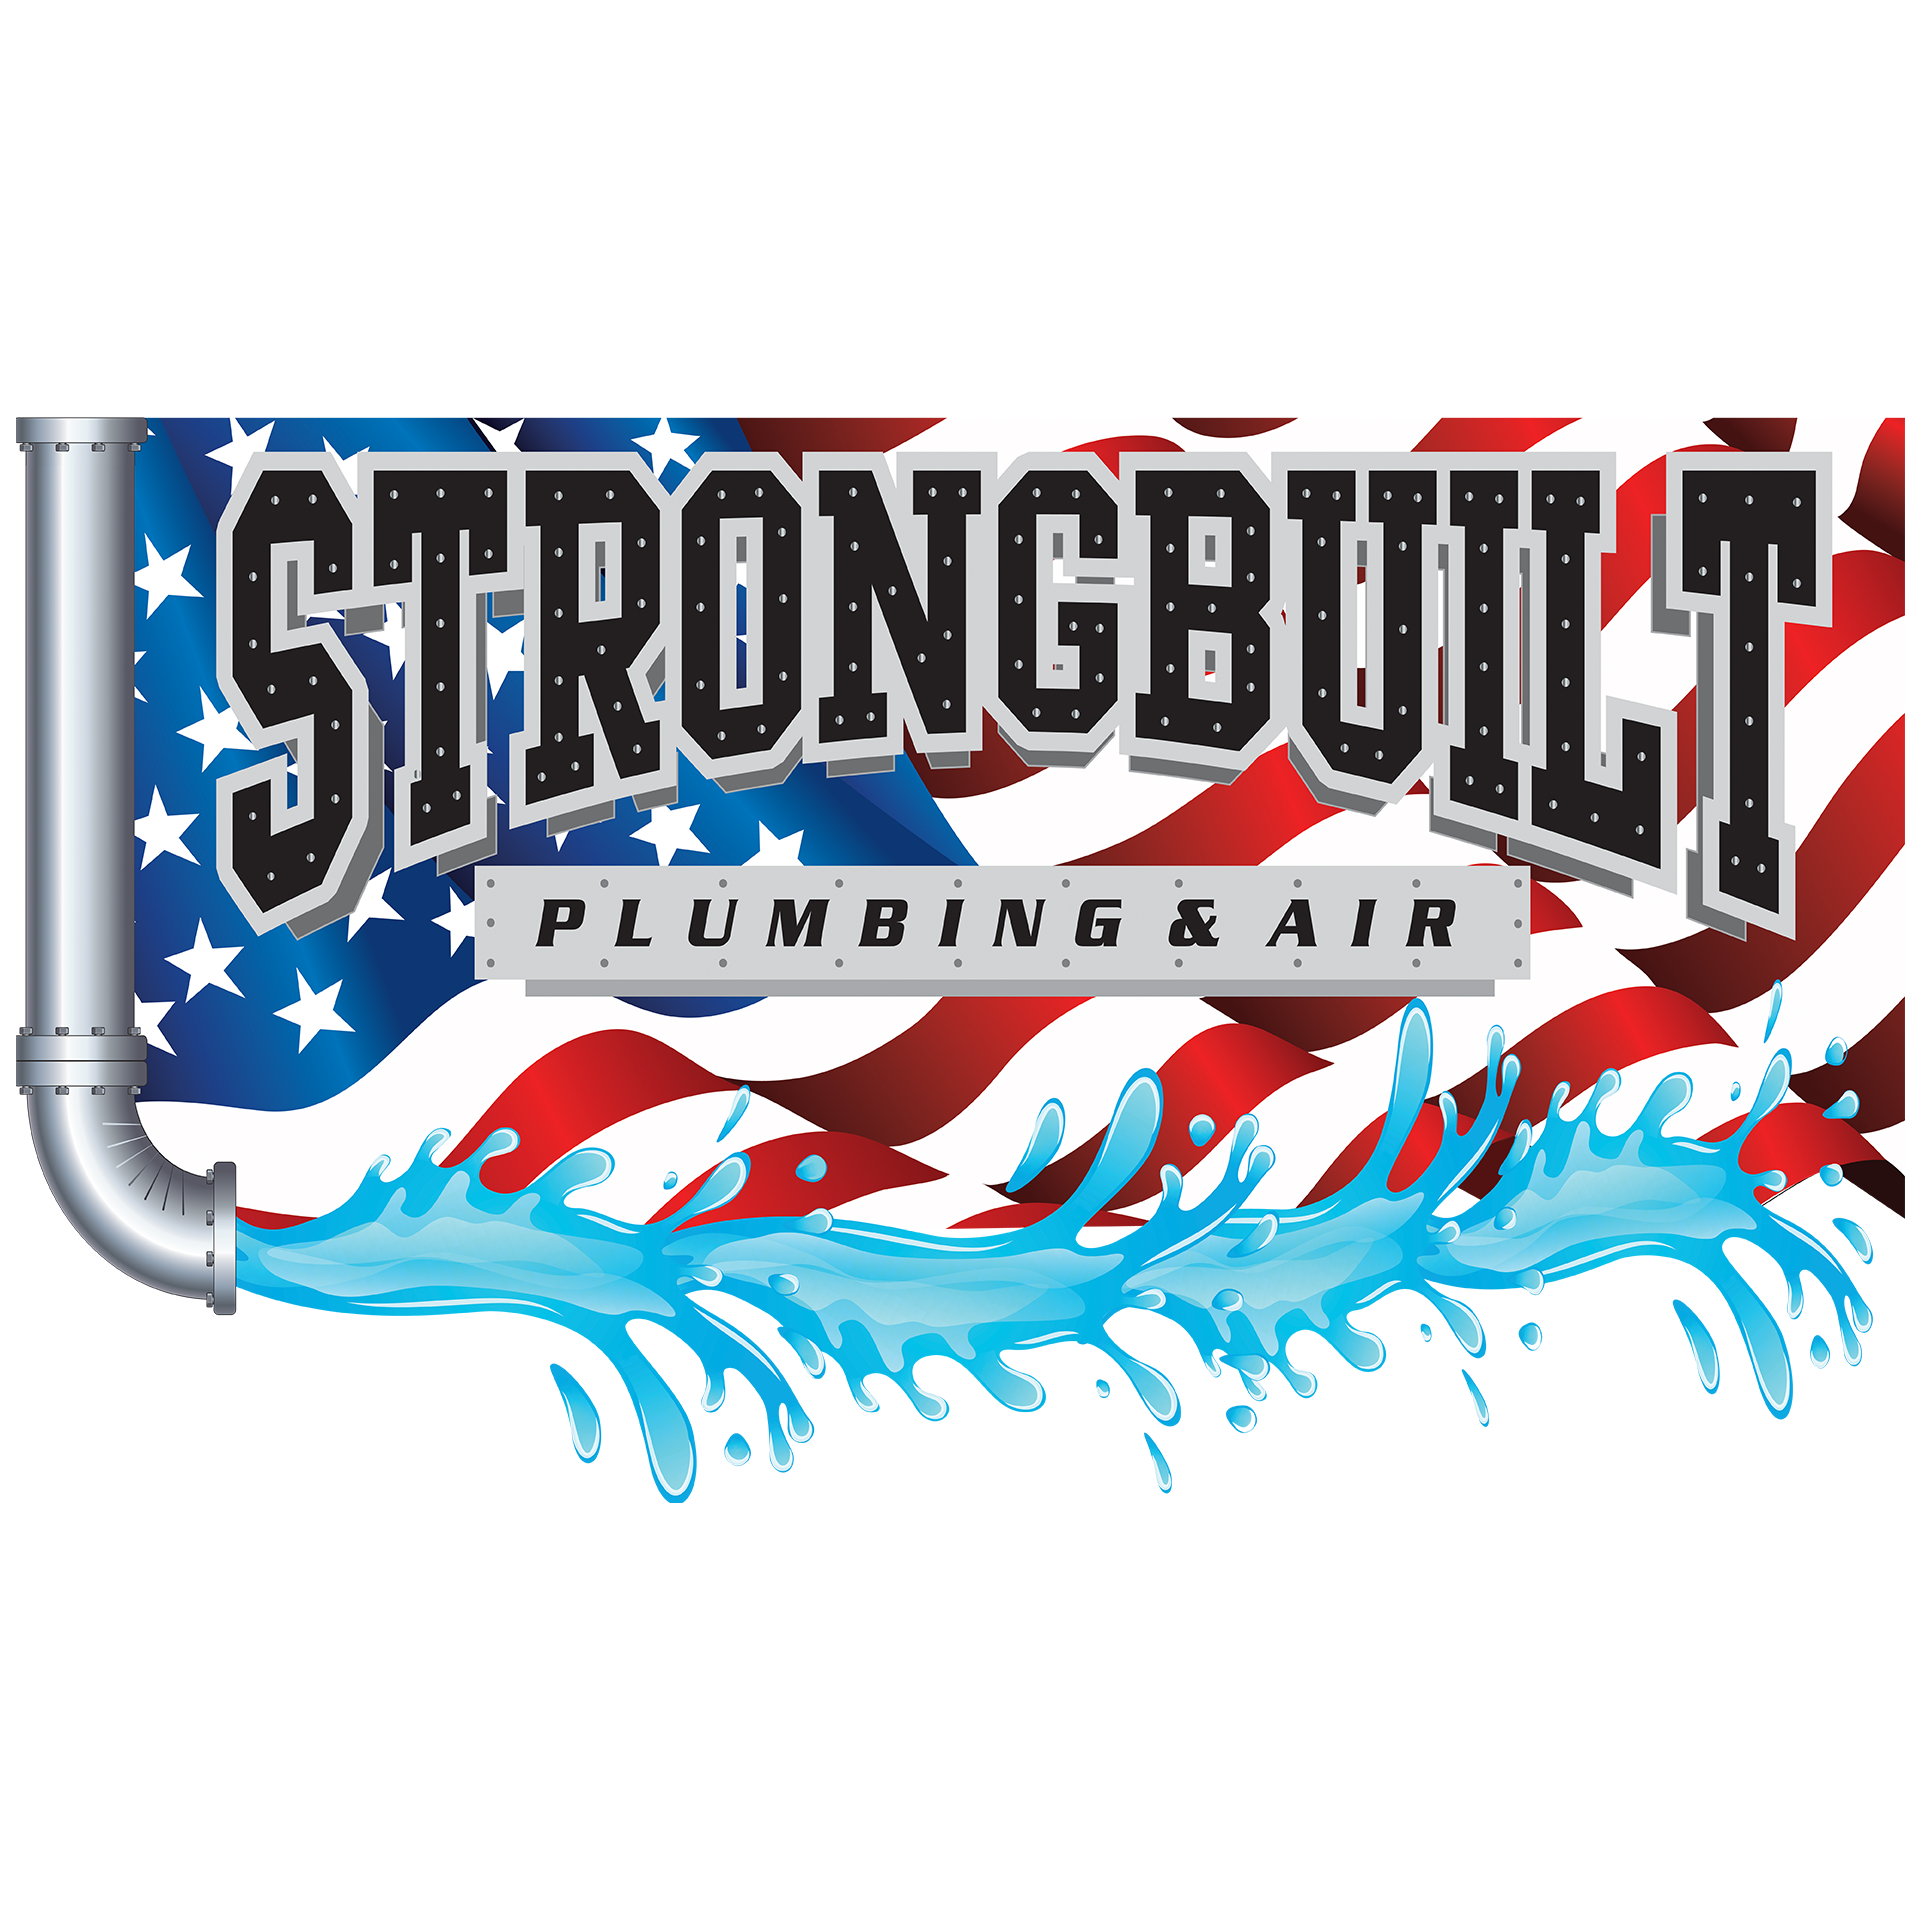 Strongbuilt Plumbing Amp Air Tucson Arizona Az